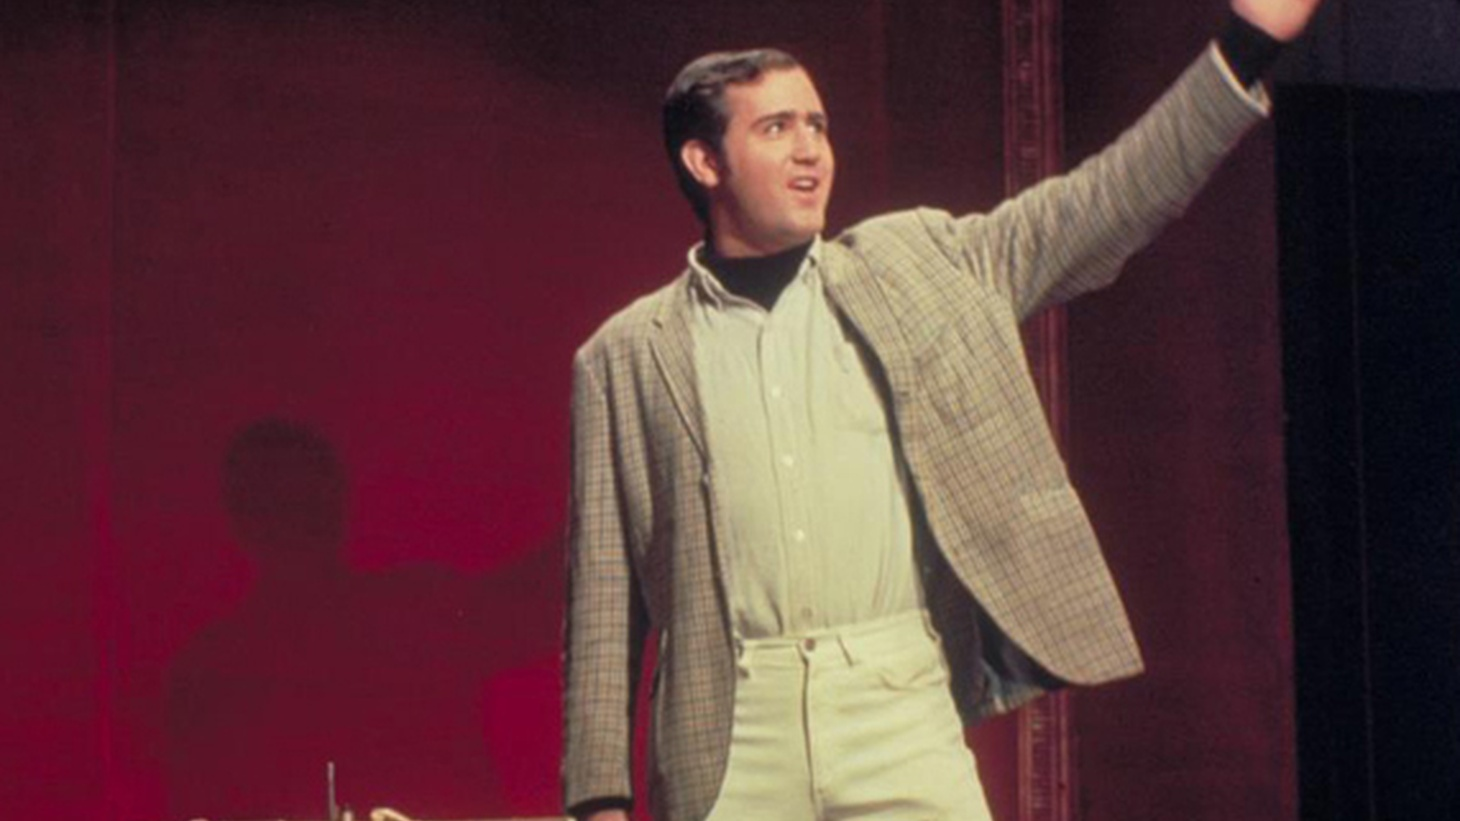 The U.S. Supreme Court upheld a Texas law that requires an ID to vote. We talk about that, and Andy Kaufman, who died 30 years ago. His former writing partner unravels the mysteries of the comedian's life and death.